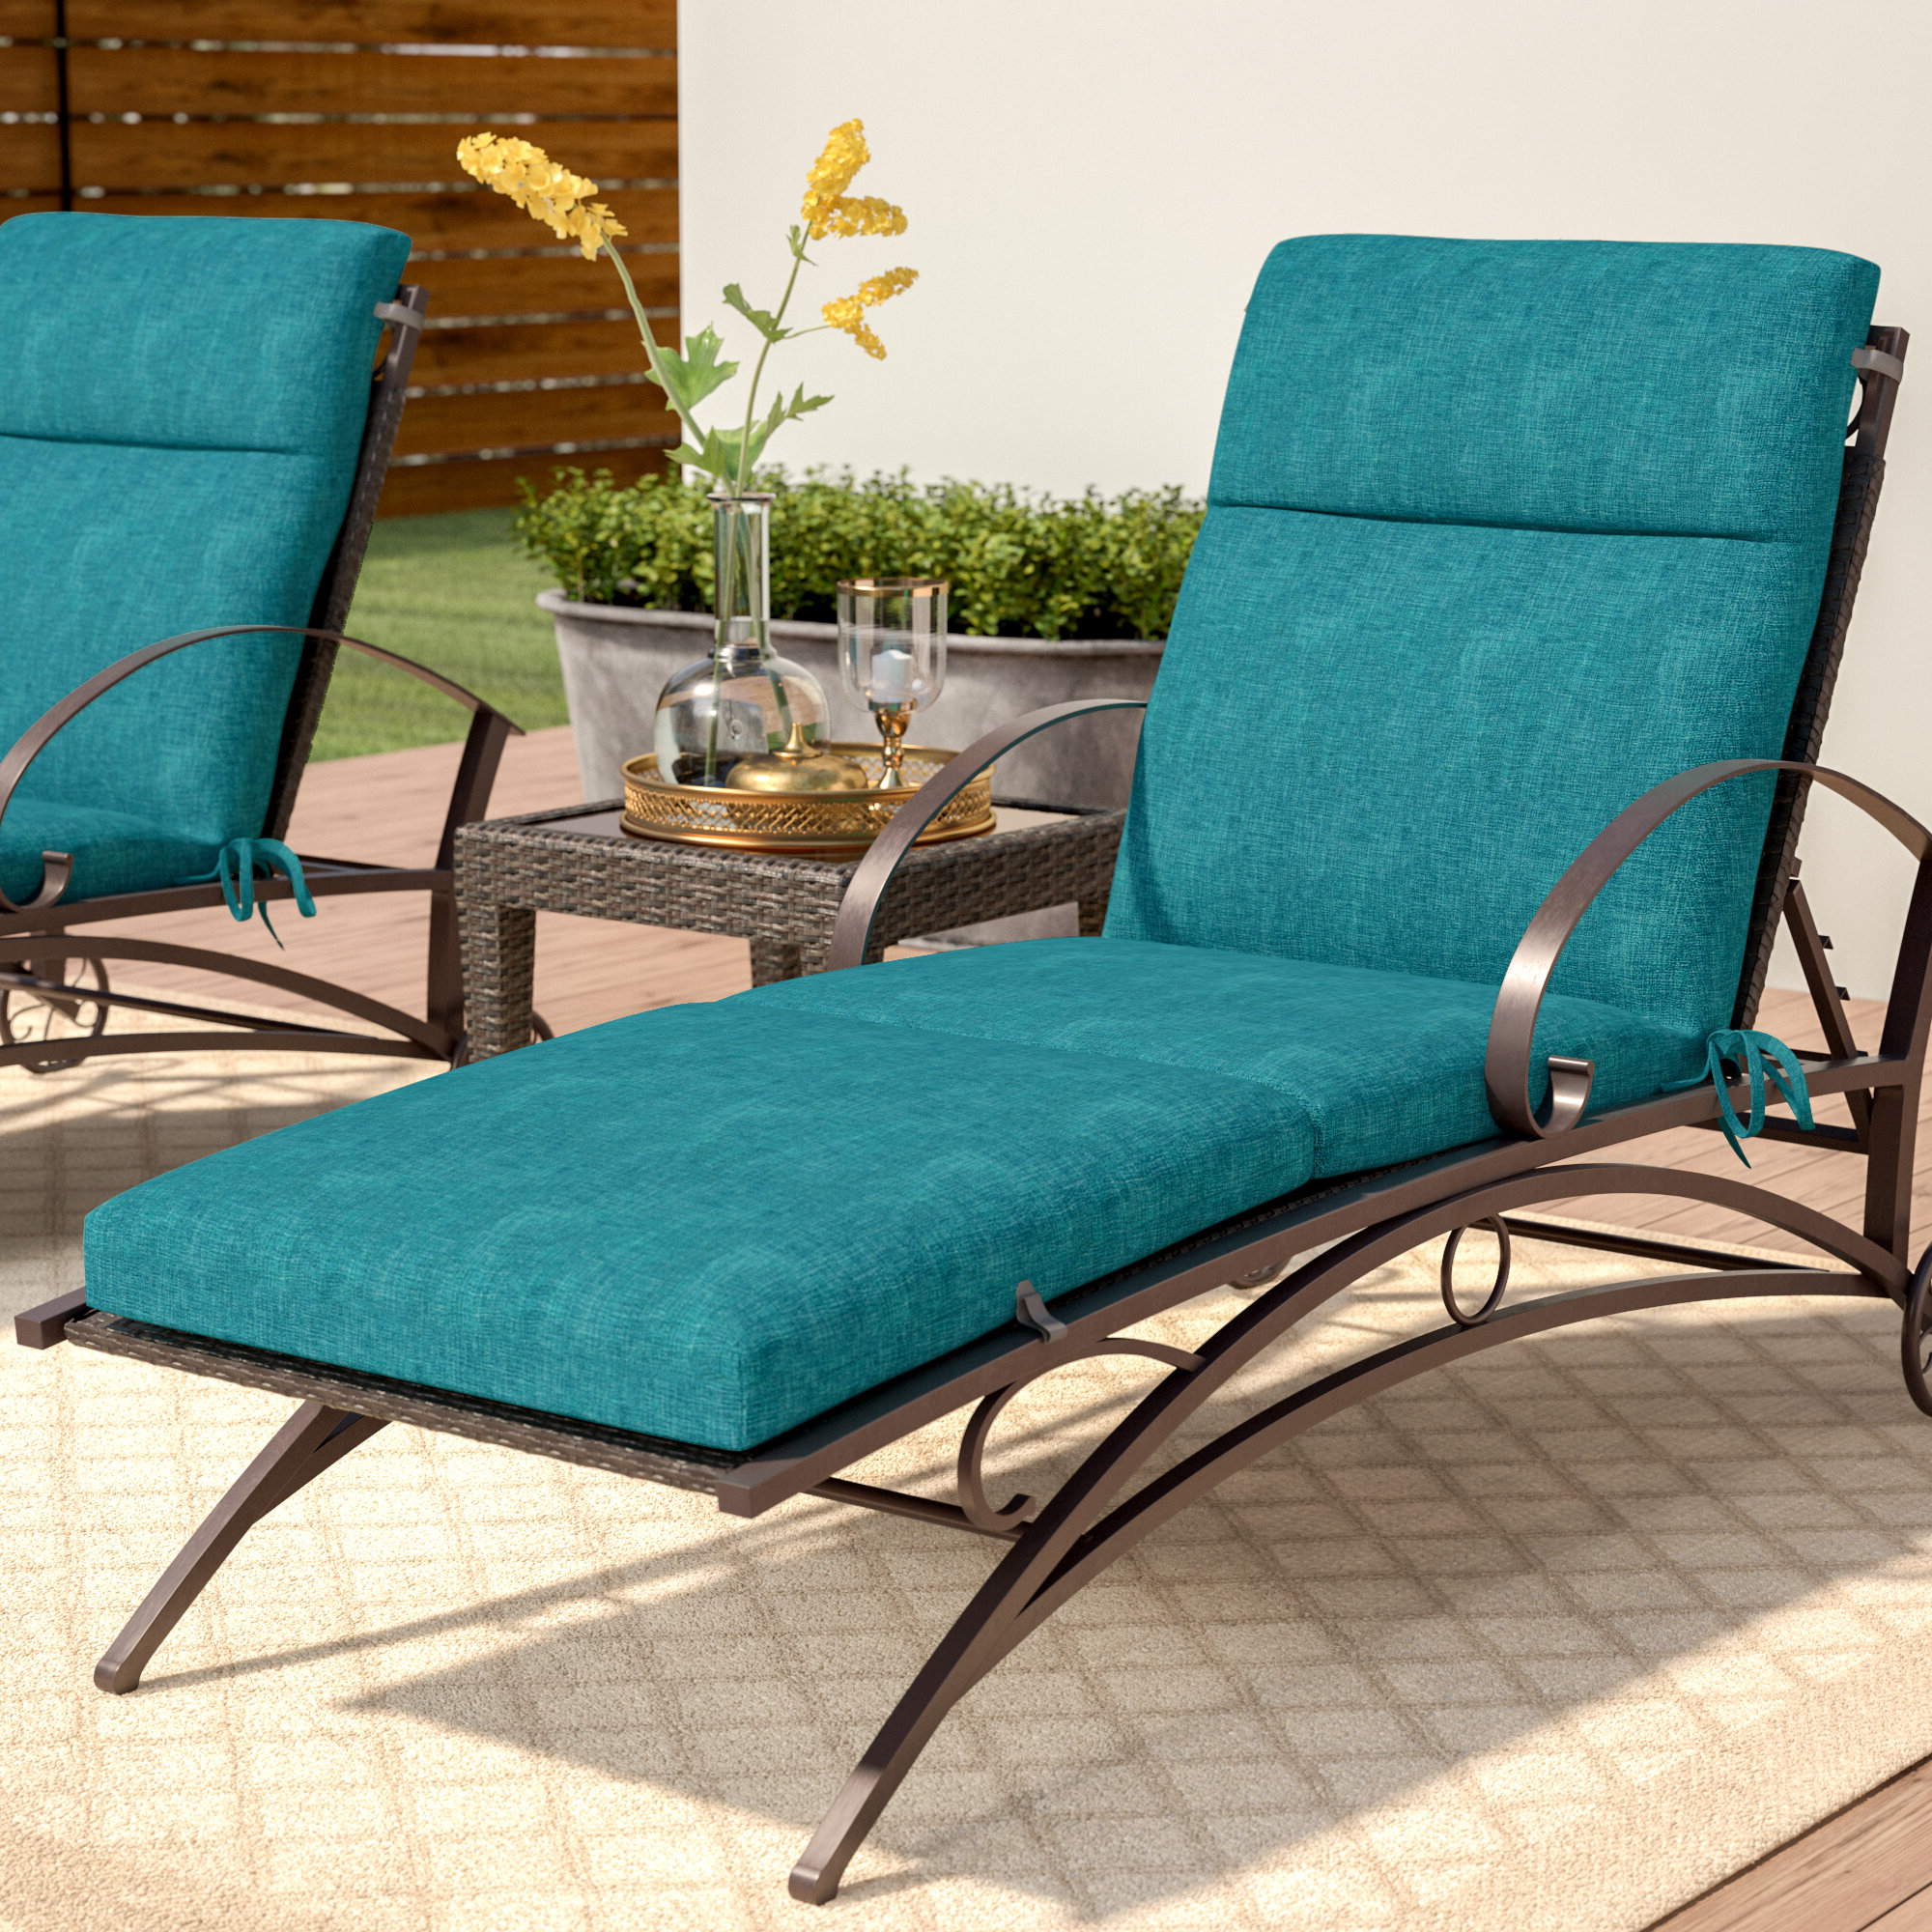 2019 Three Posts Indoor/outdoor Chaise Lounge Cushion & Reviews With Regard To Bradenton Outdoor Wicker Chaise Lounges With Cushions (View 12 of 25)